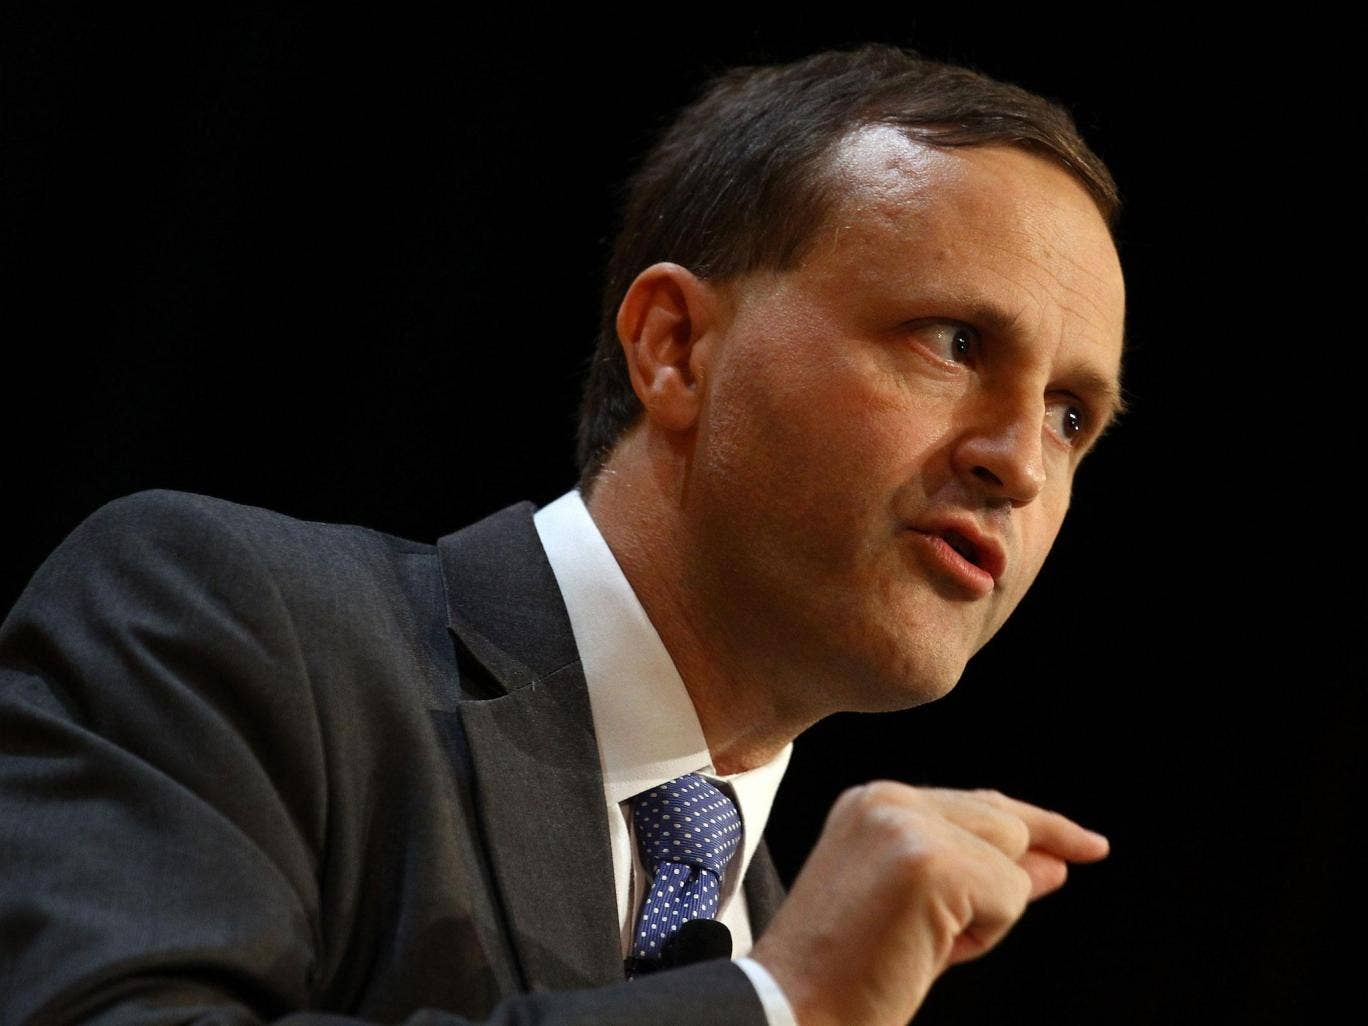 Steve Webb, the Pensions minister, said that the pensioners of tomorrow could not afford to rely on the state pension